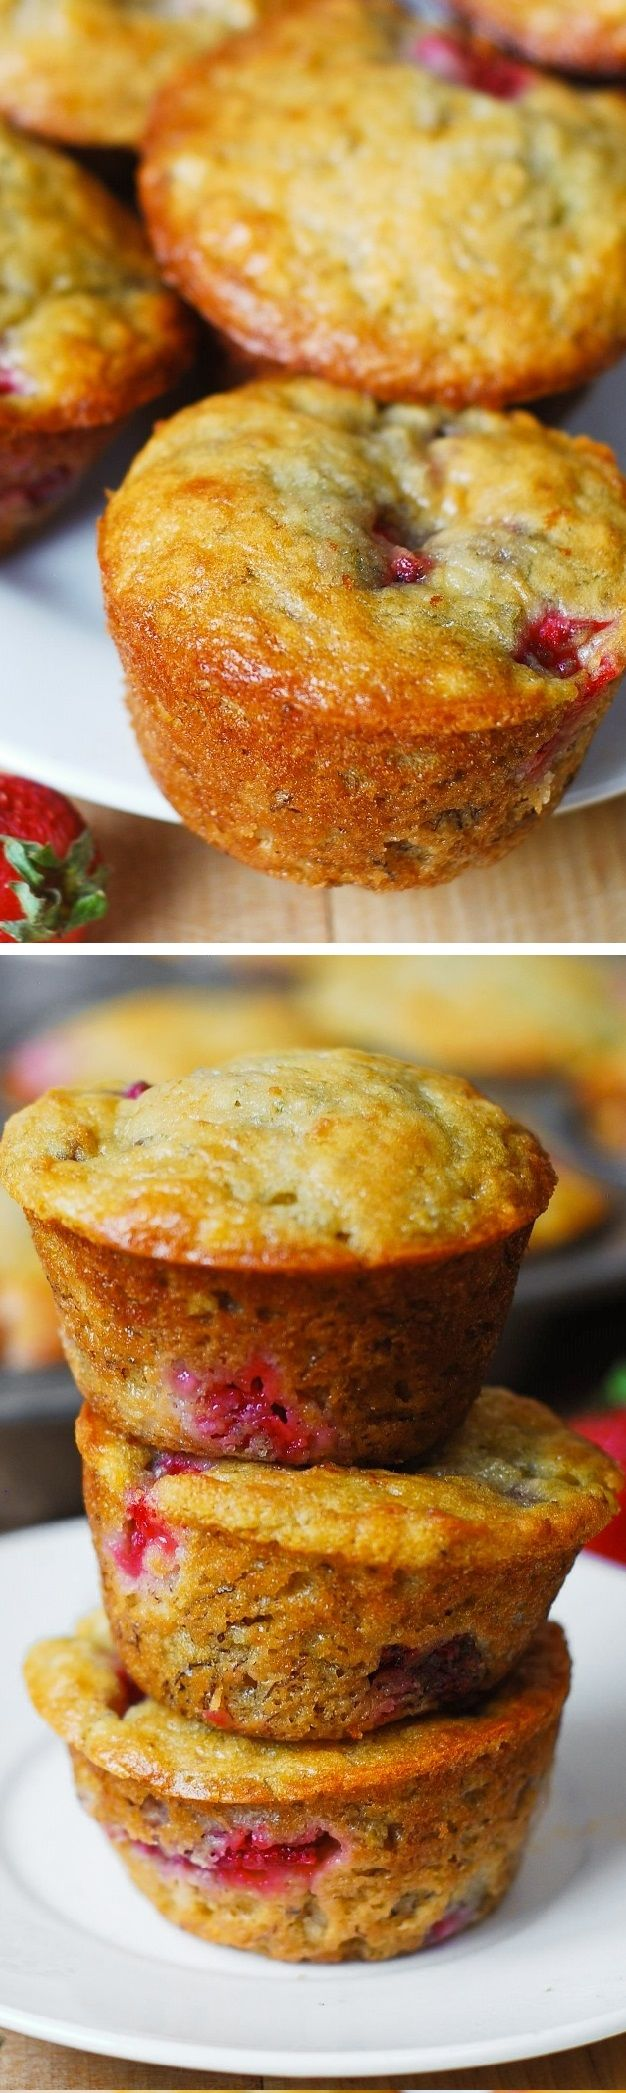 Strawberry banana bread muffins. Only 1/3 cup butter (and 1/3 cup Greek yogurt) used to make 12 regular size muffins. Greek yogurt creates a rich texture and reduces the amount of saturated fats used! #healthier #low_fat #recipes